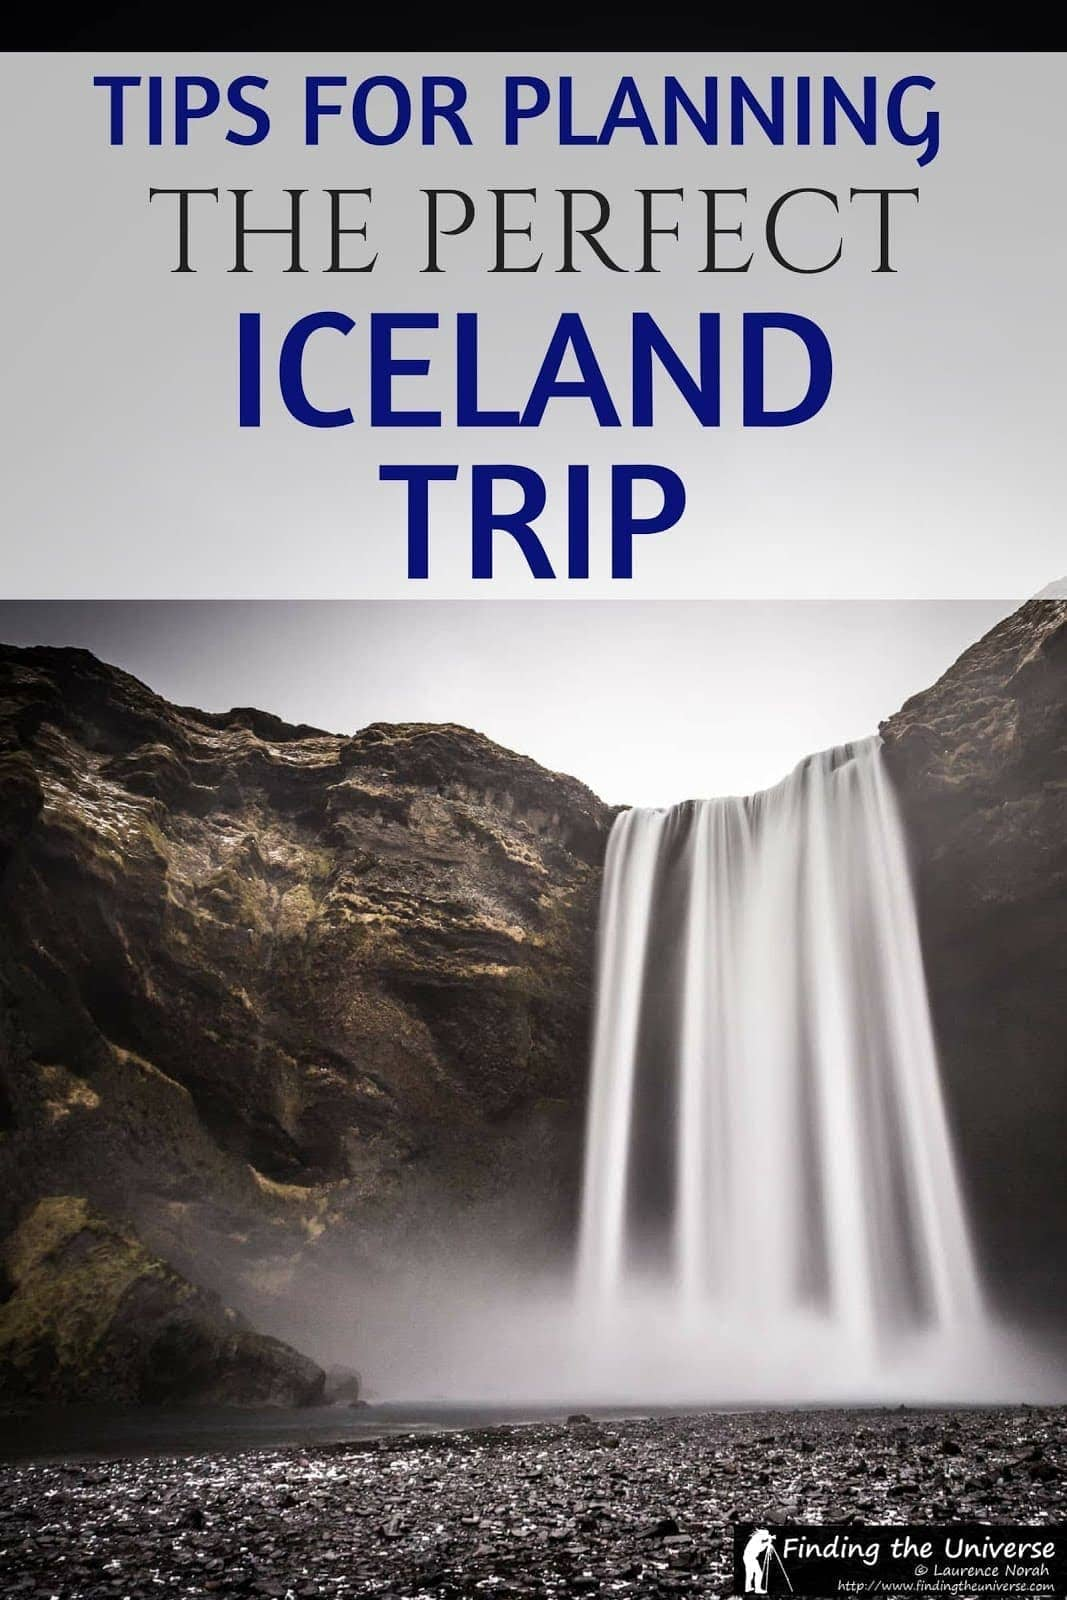 Everything you need to know for planning an Iceland trip, including your options for getting around, tips on when to go and what to see!